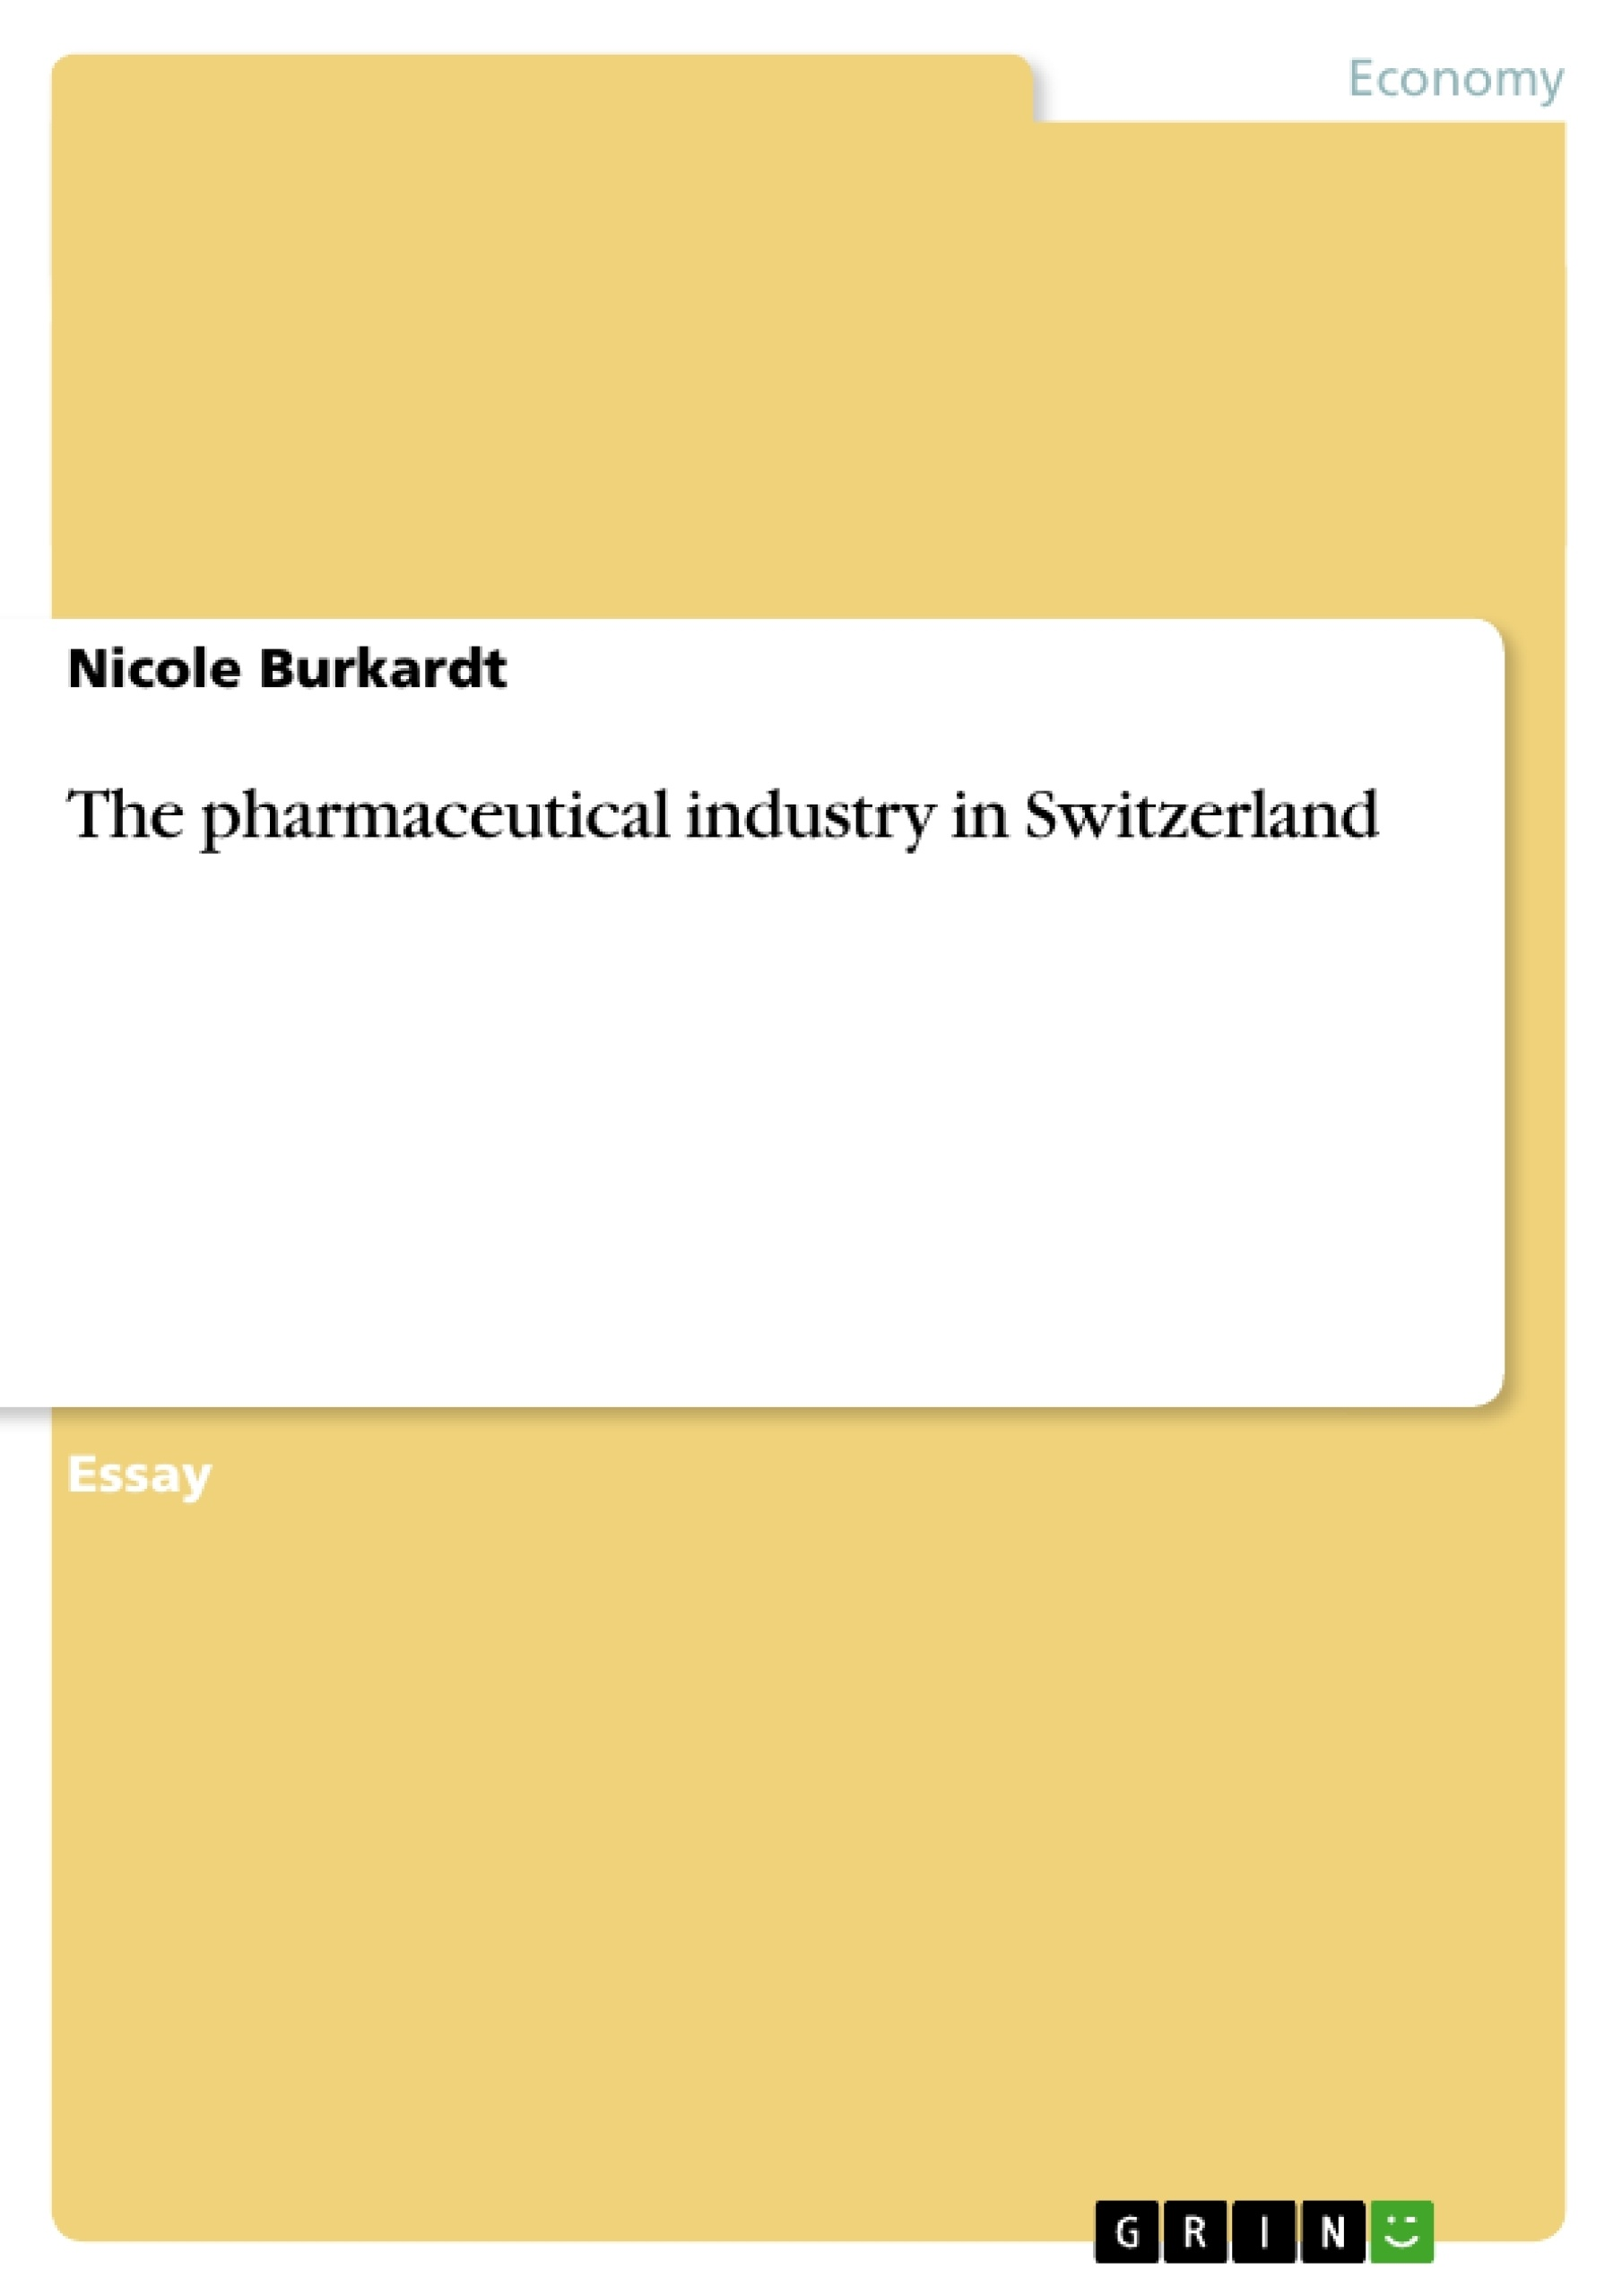 a comparative study of the european pharmaceutical industry essay Flowability of surface modified pharmaceutical granules: a comparative experimental and numerical study march 2013 european journal of pharmaceutical.